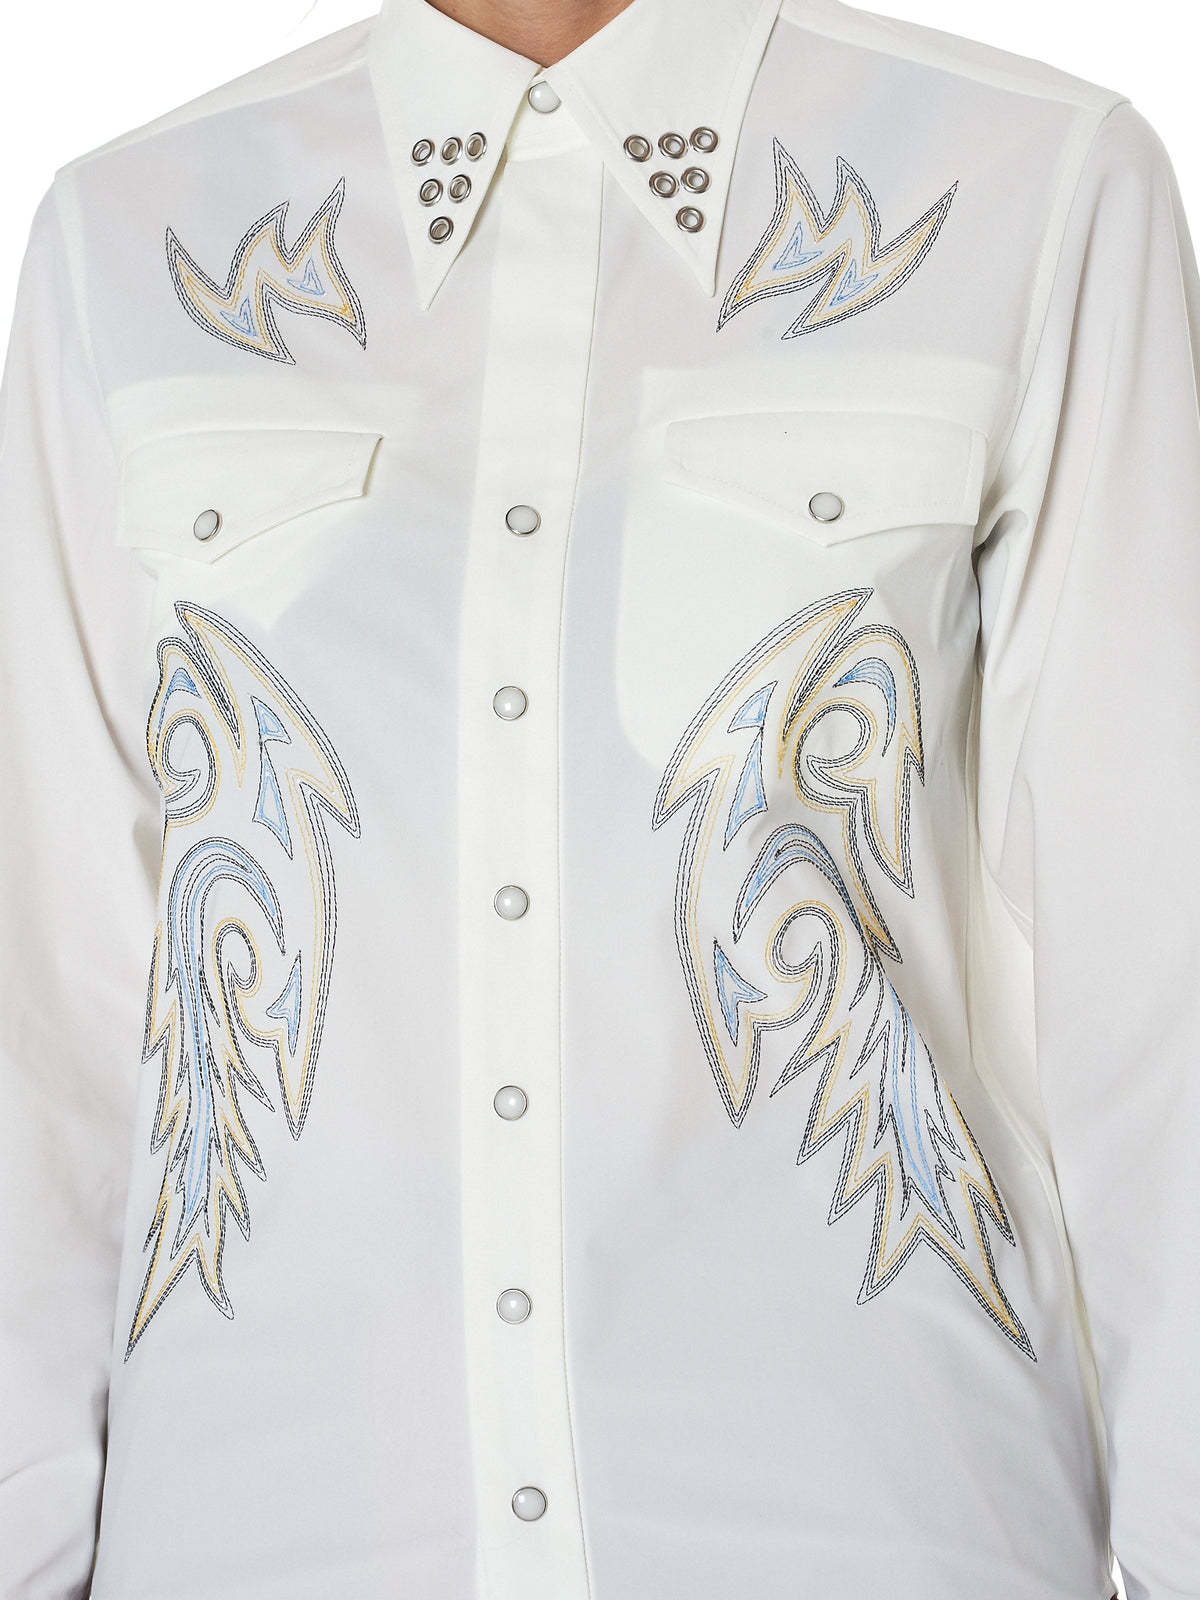 Toga Archives Embroidery Shirt - Hlorenzo Detail 2